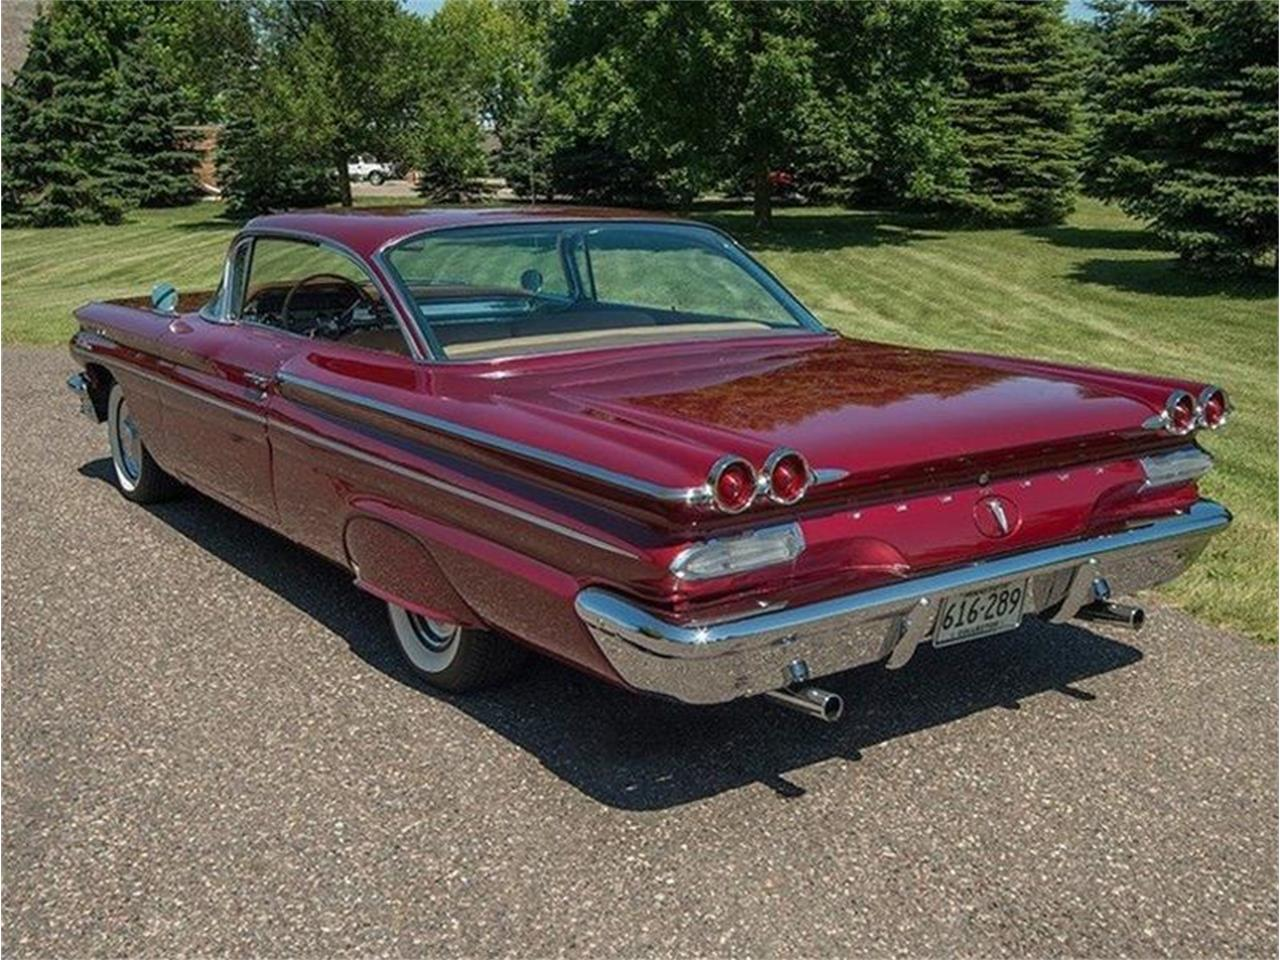 Large Picture of 1960 Pontiac Ventura located in Rogers Minnesota - $26,950.00 - LHB7